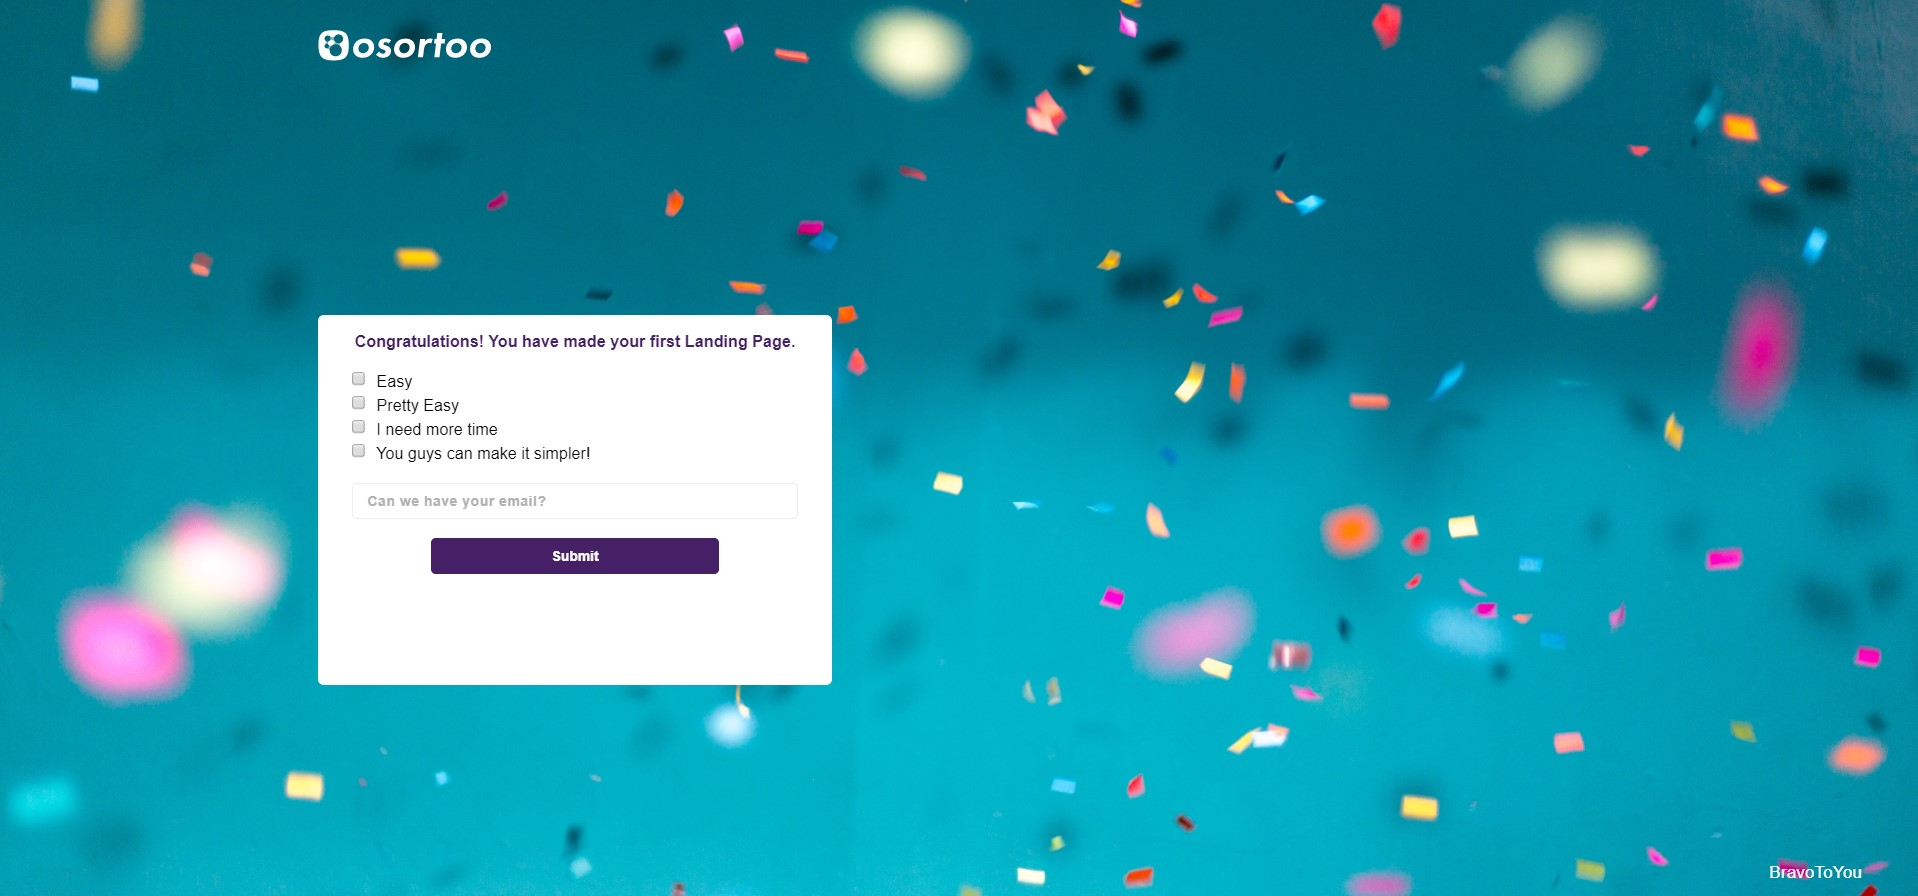 Congratulations you have made a Landing Page